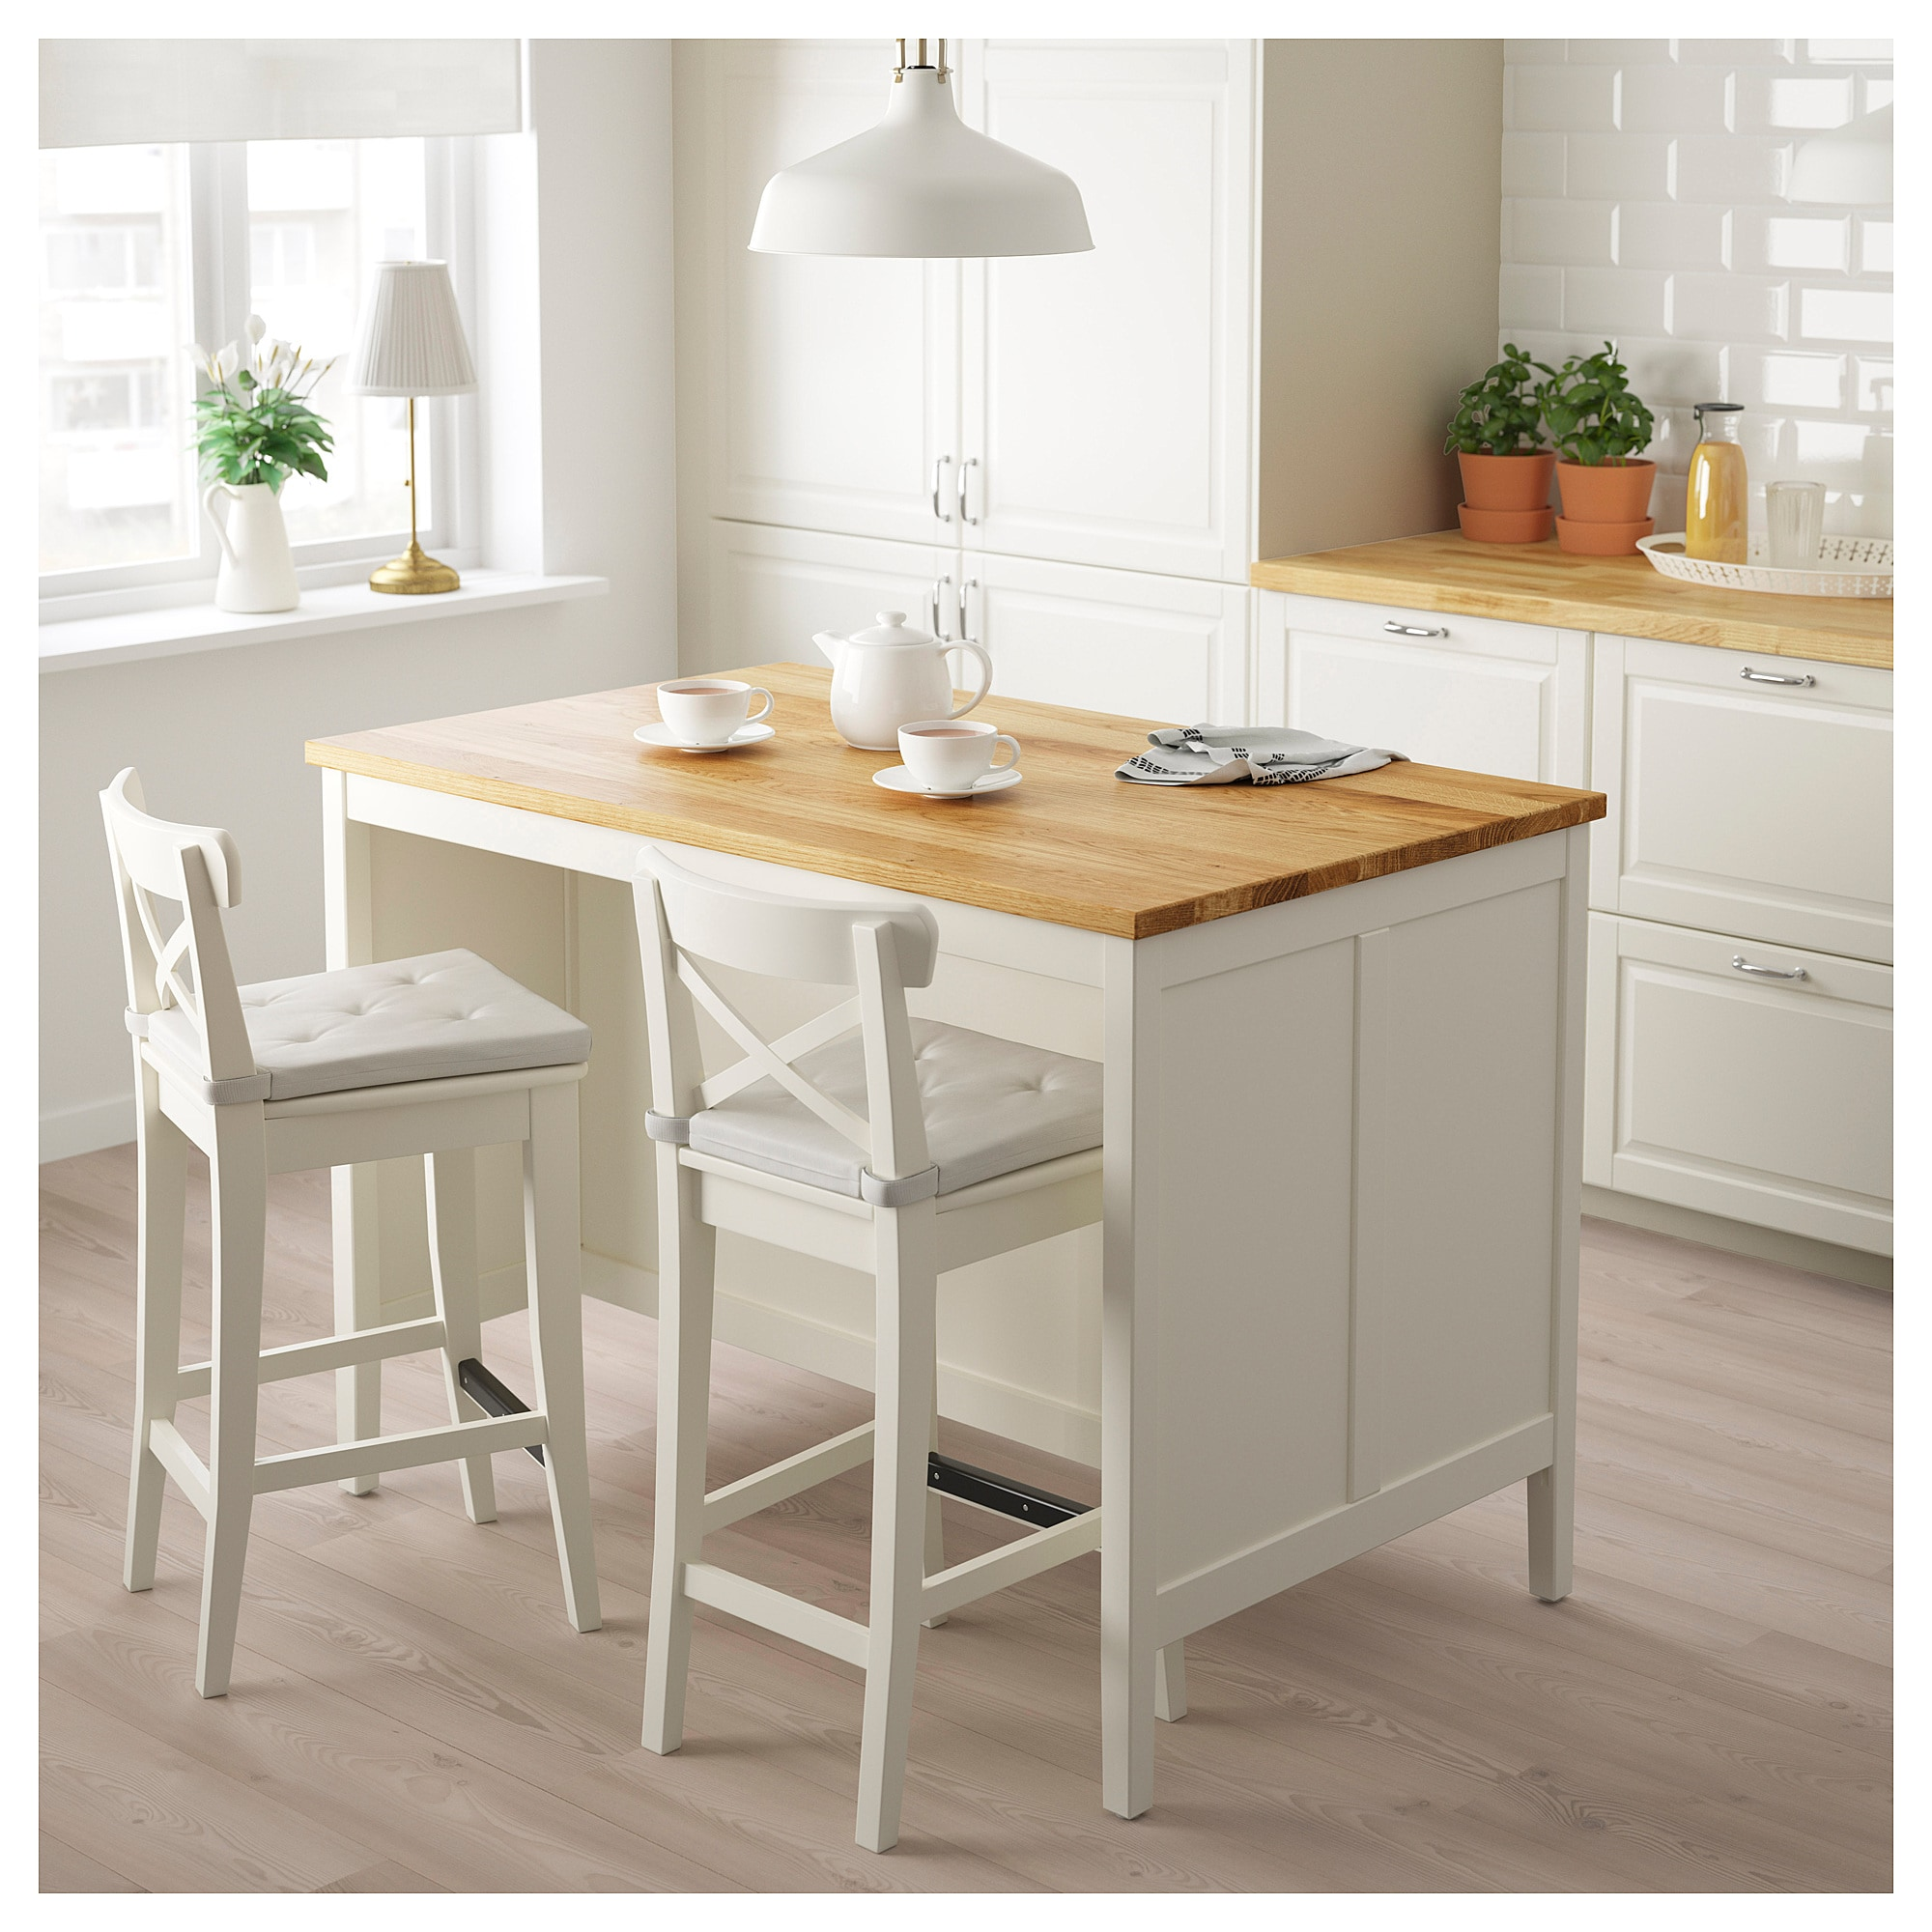 Ikea Tornviken Off White Oak Kitchen Island En 2019 Ilot